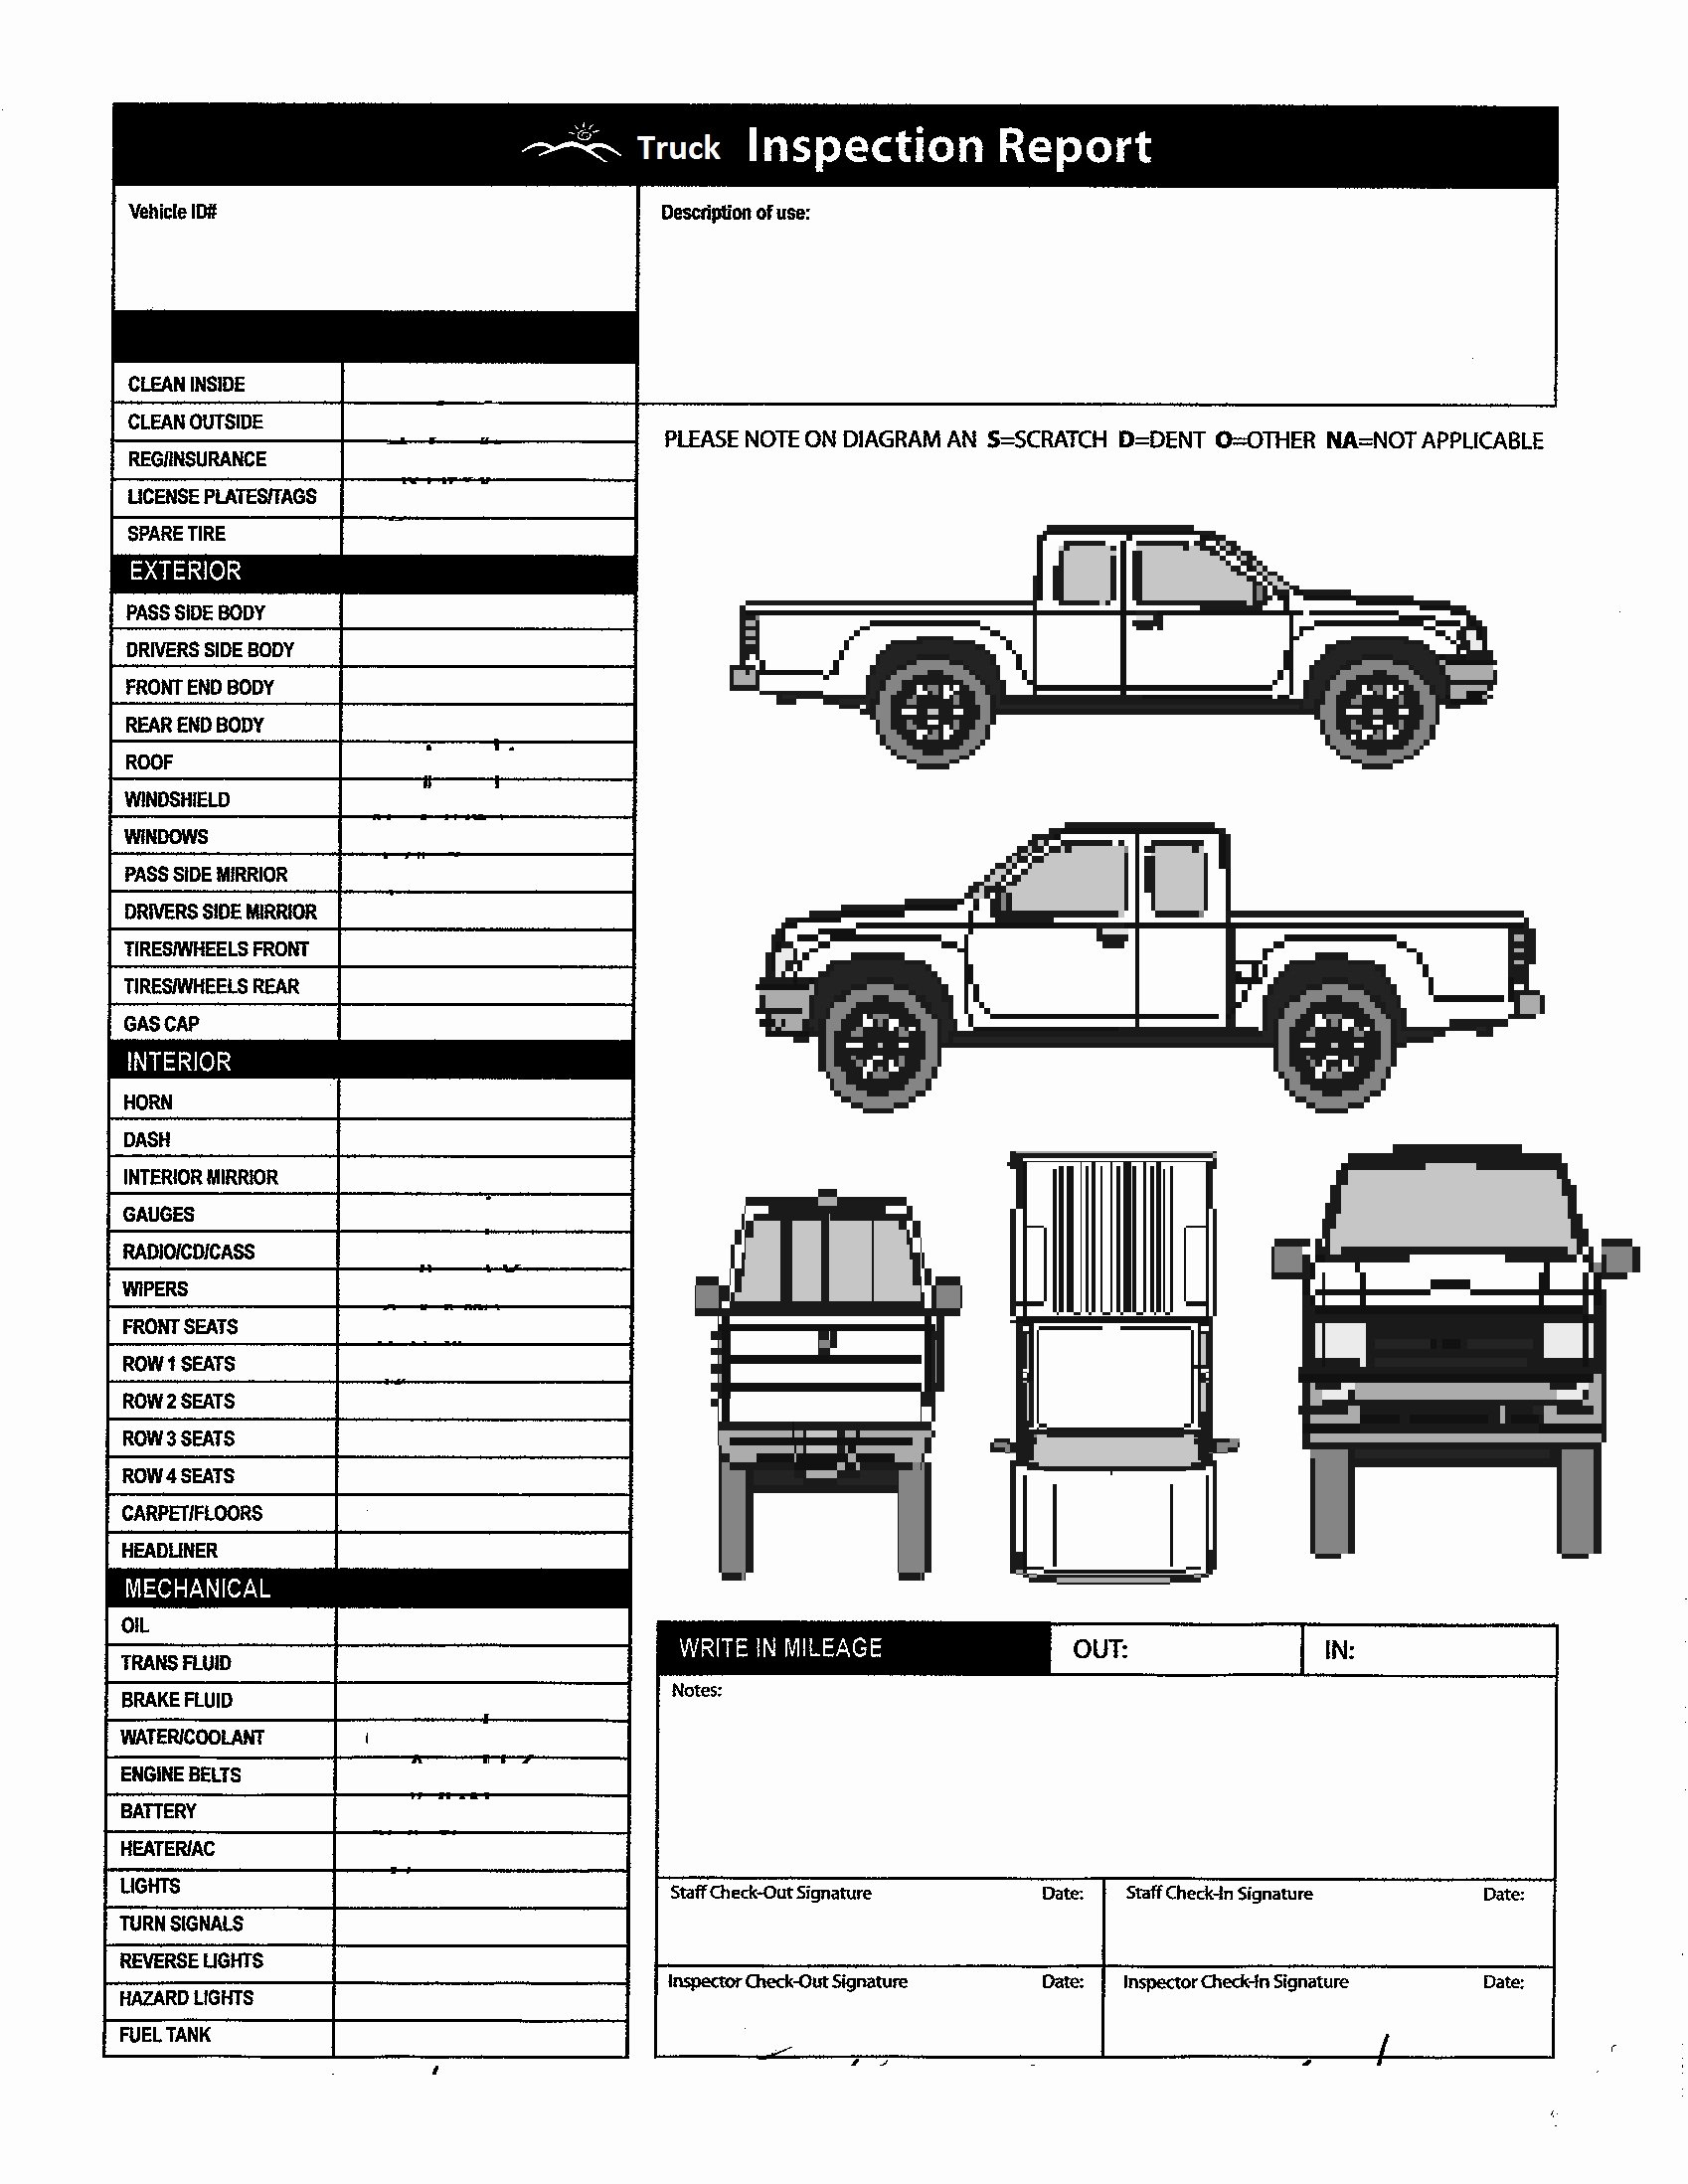 Vehicle Inspection form Template Fresh Vehicle Inspection form Template